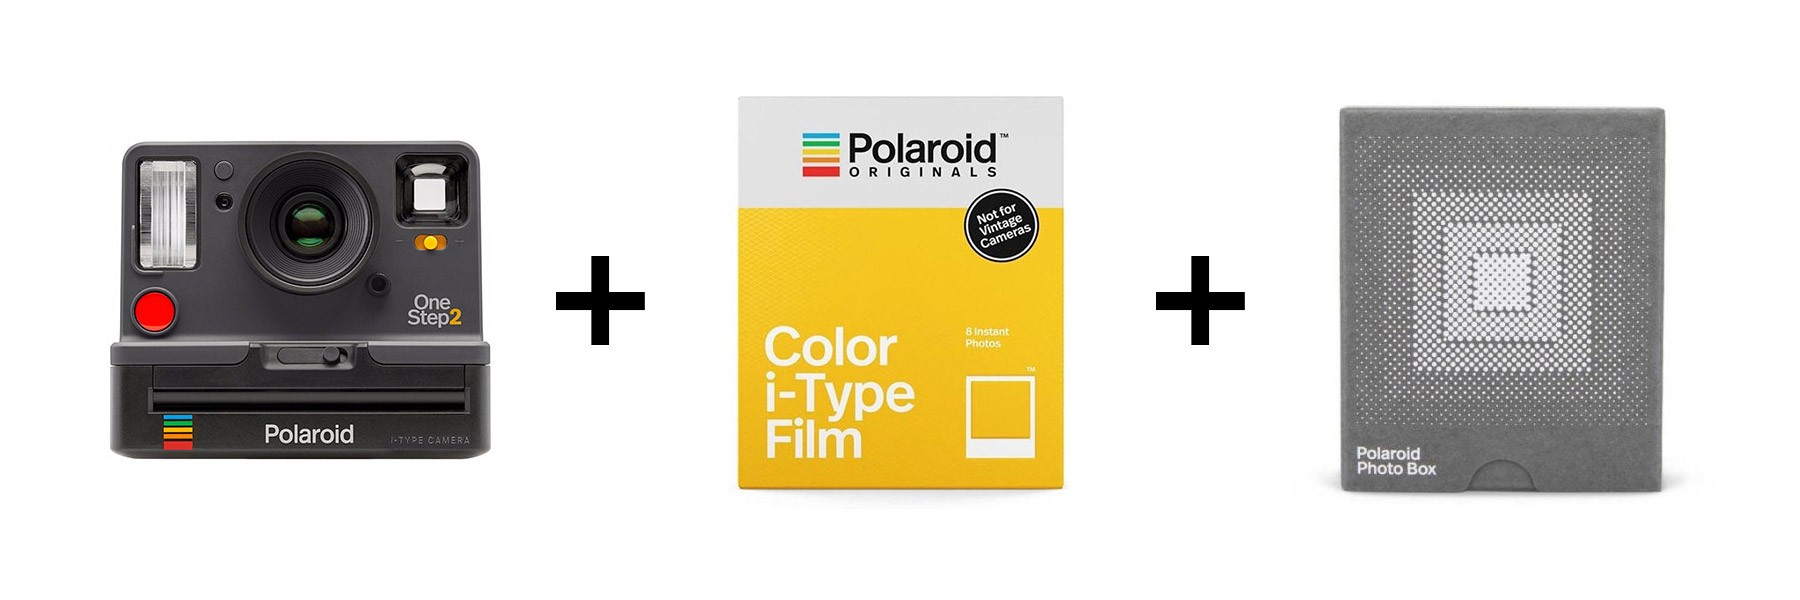 Polaroid Originals | OneStep2 Camera | Viewfinder | Graphite | Everything Box | FotoFilmFabriek